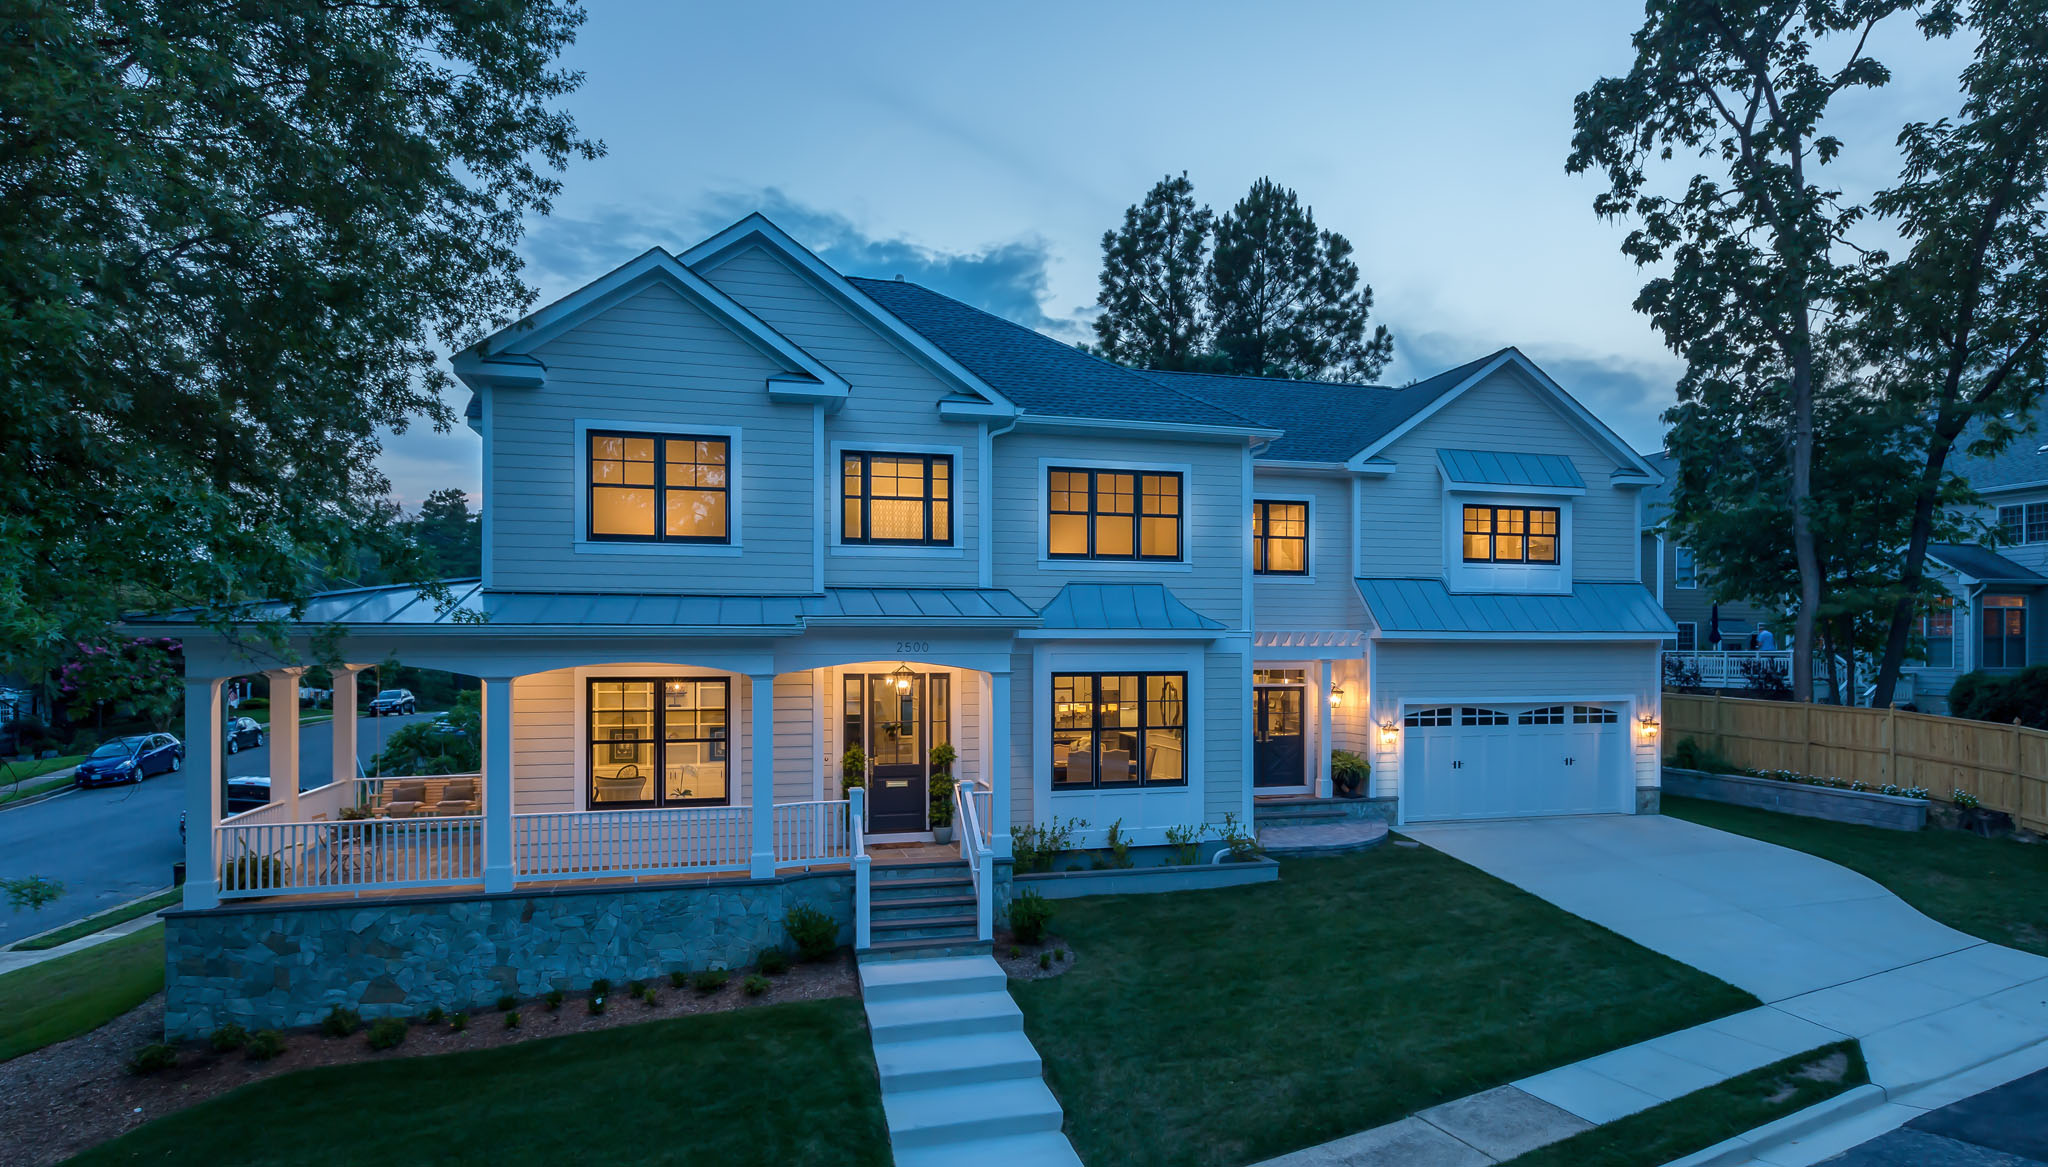 Come home from a long day to a beautifully lit home. Custom Home by Custom Builder, North Arlington, VA 22207